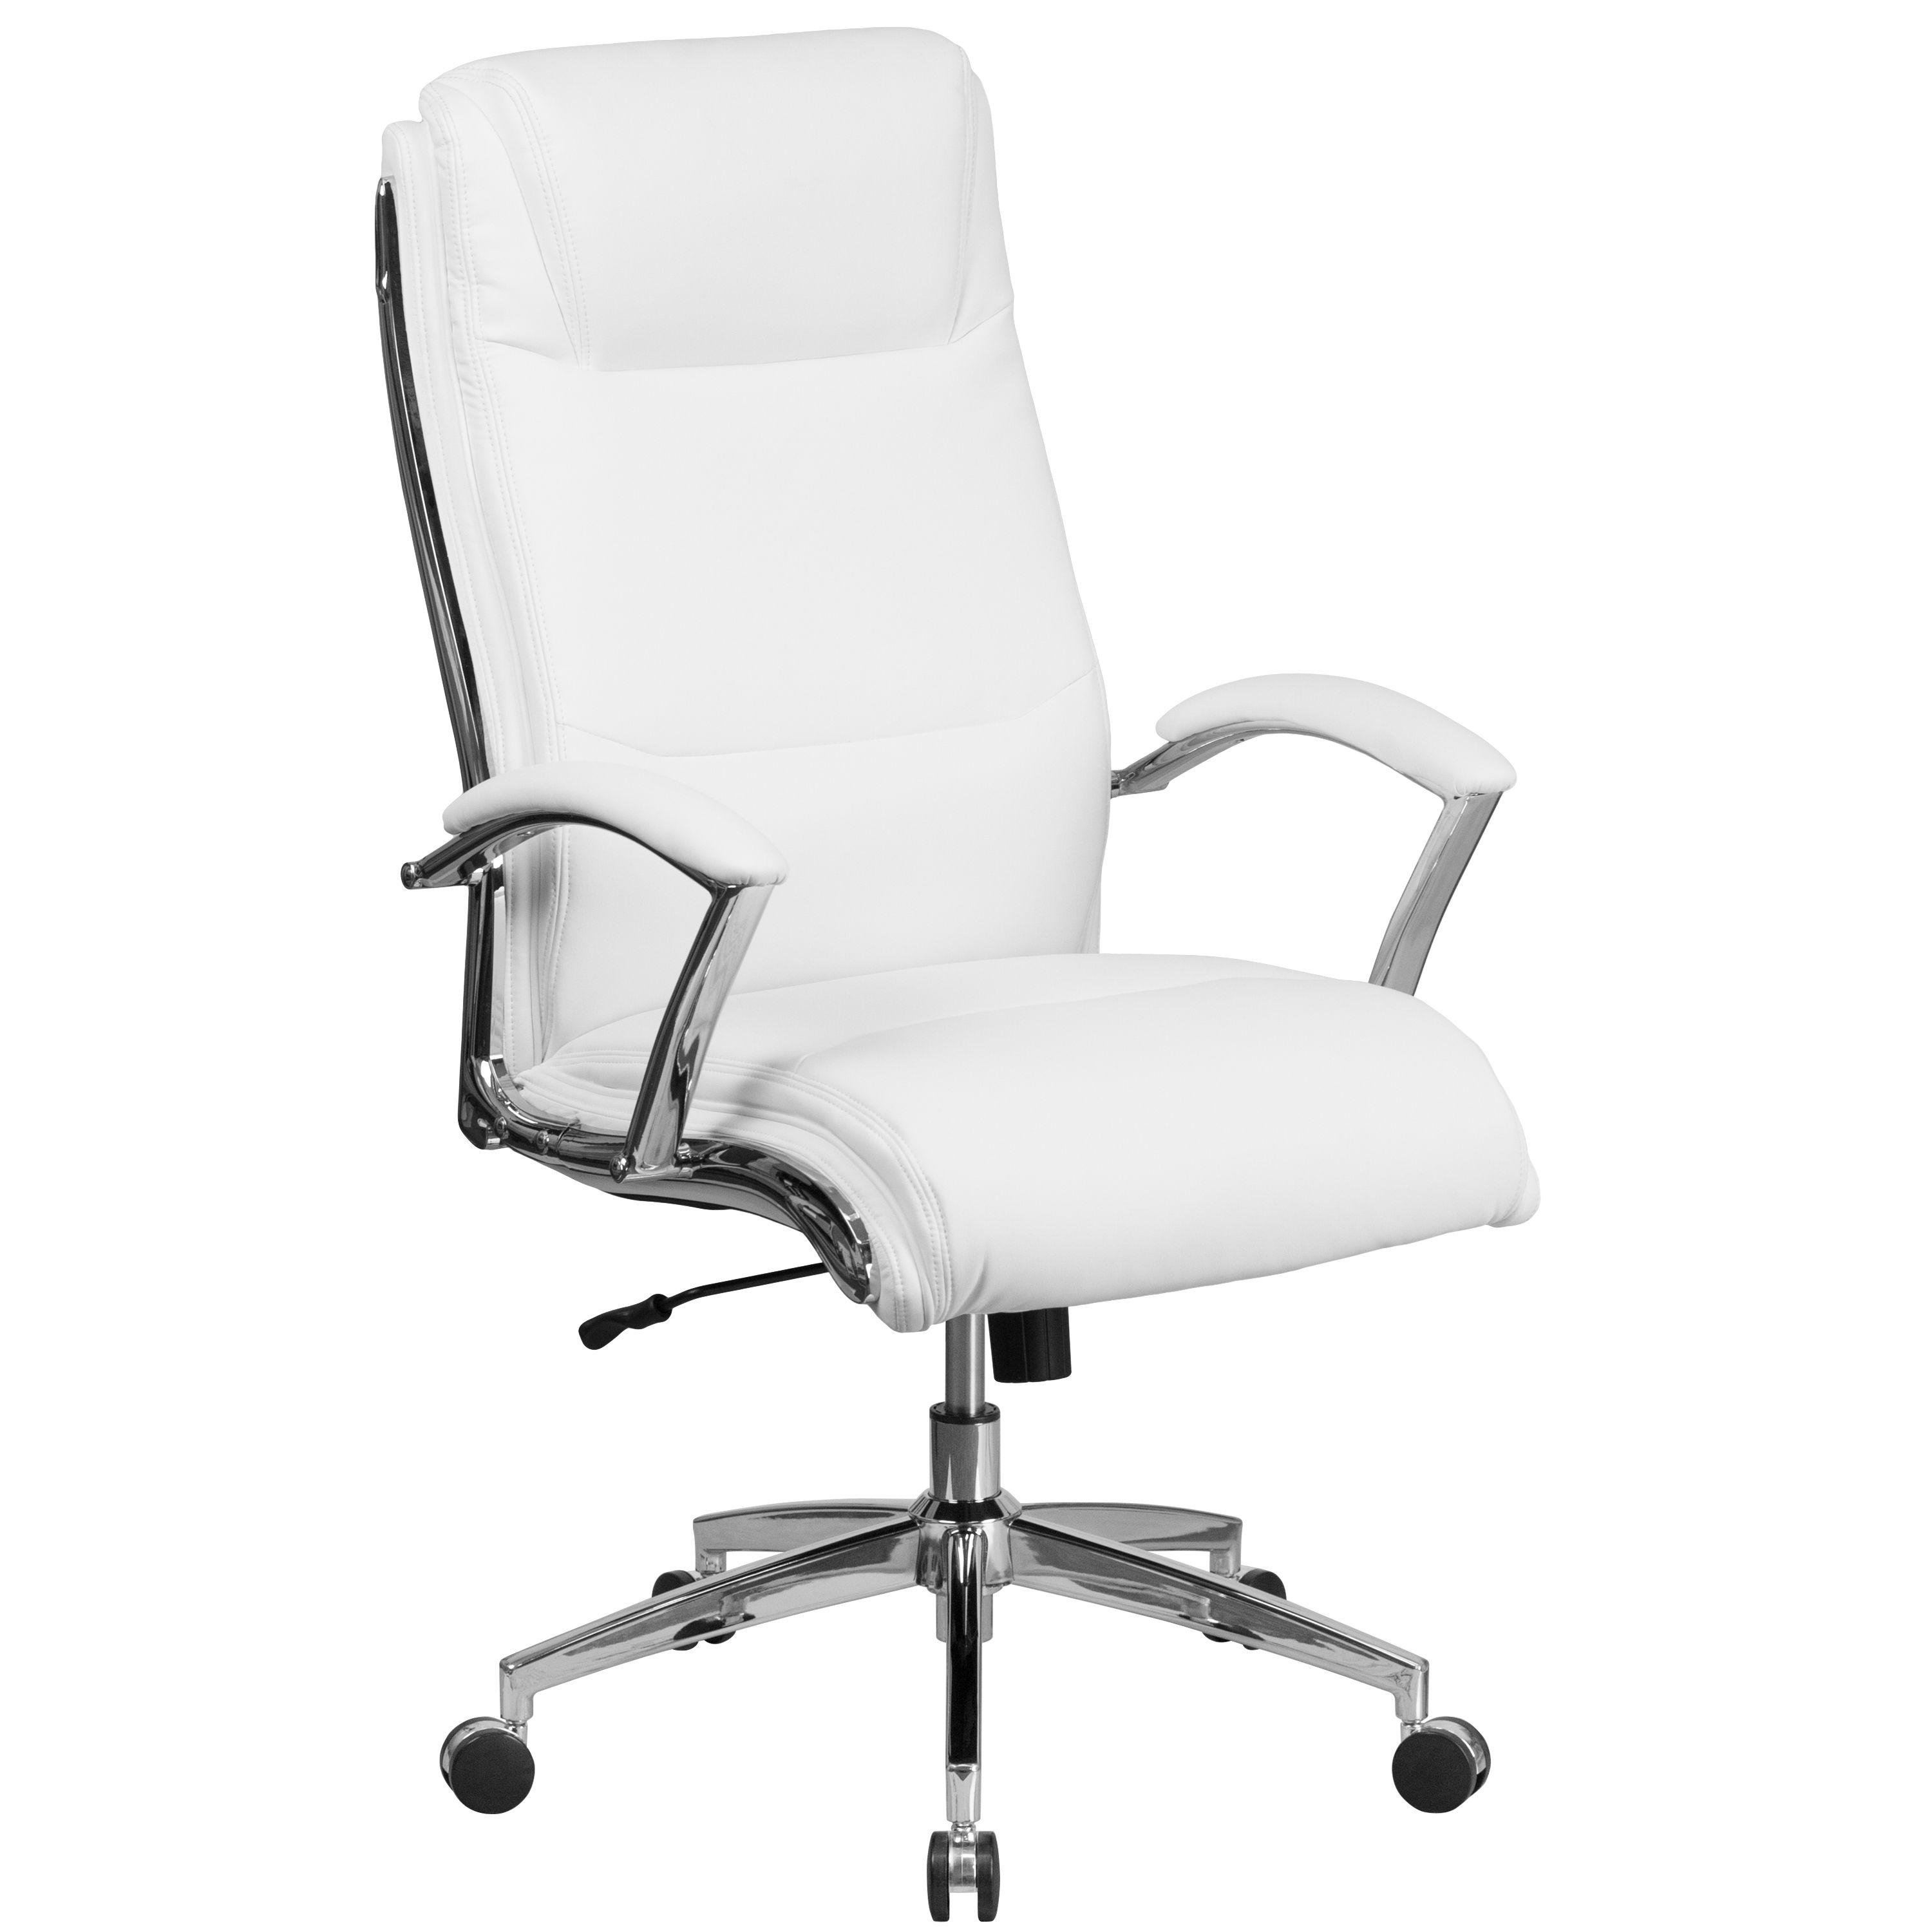 Home In 2020 White Leather Office Chair Swivel Office Chair Contemporary Office Chairs